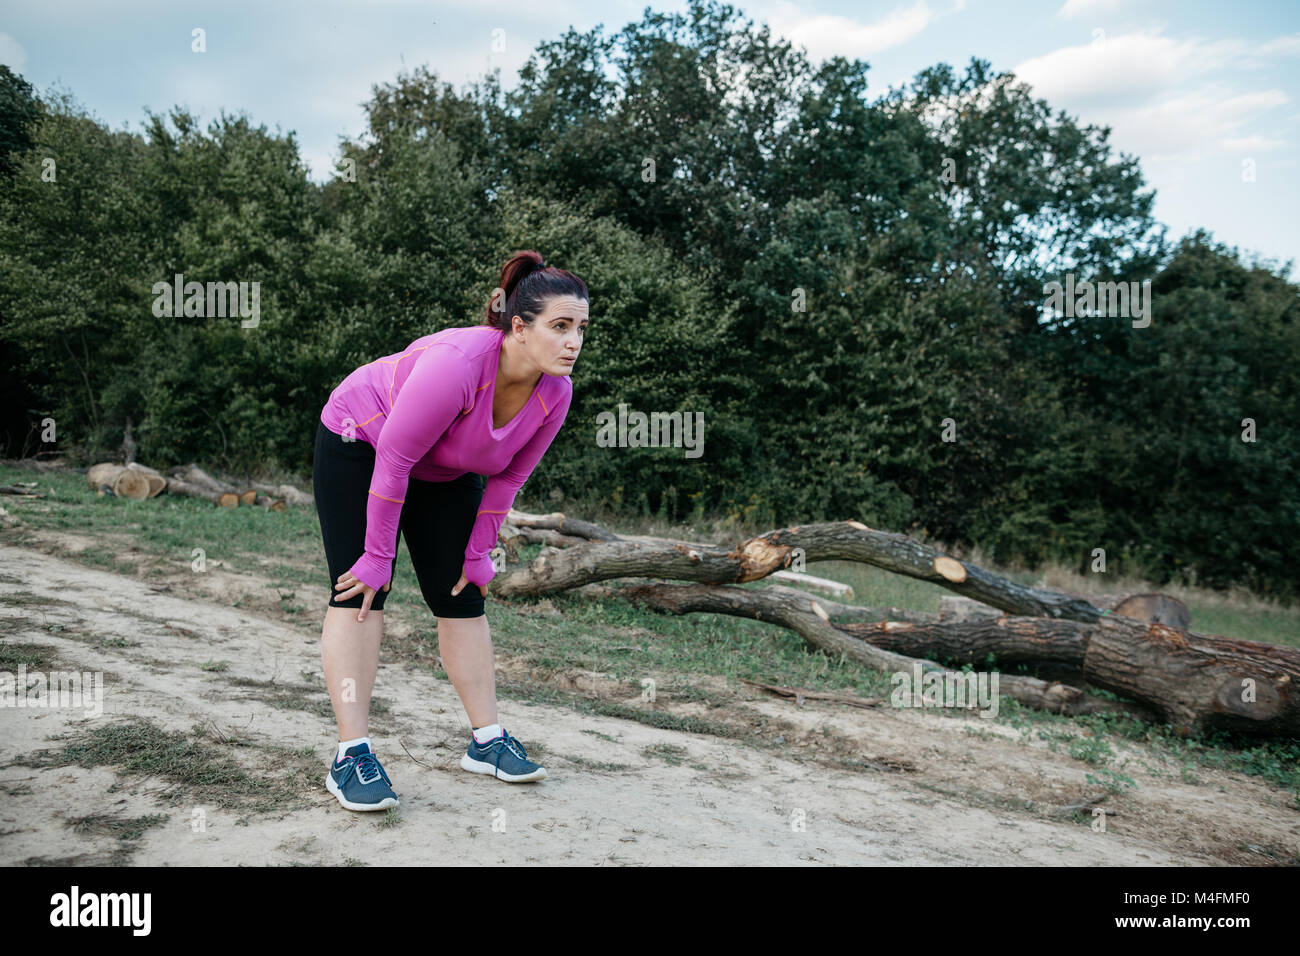 Portrait of a plus size female runner bending over and resting. - Stock Image